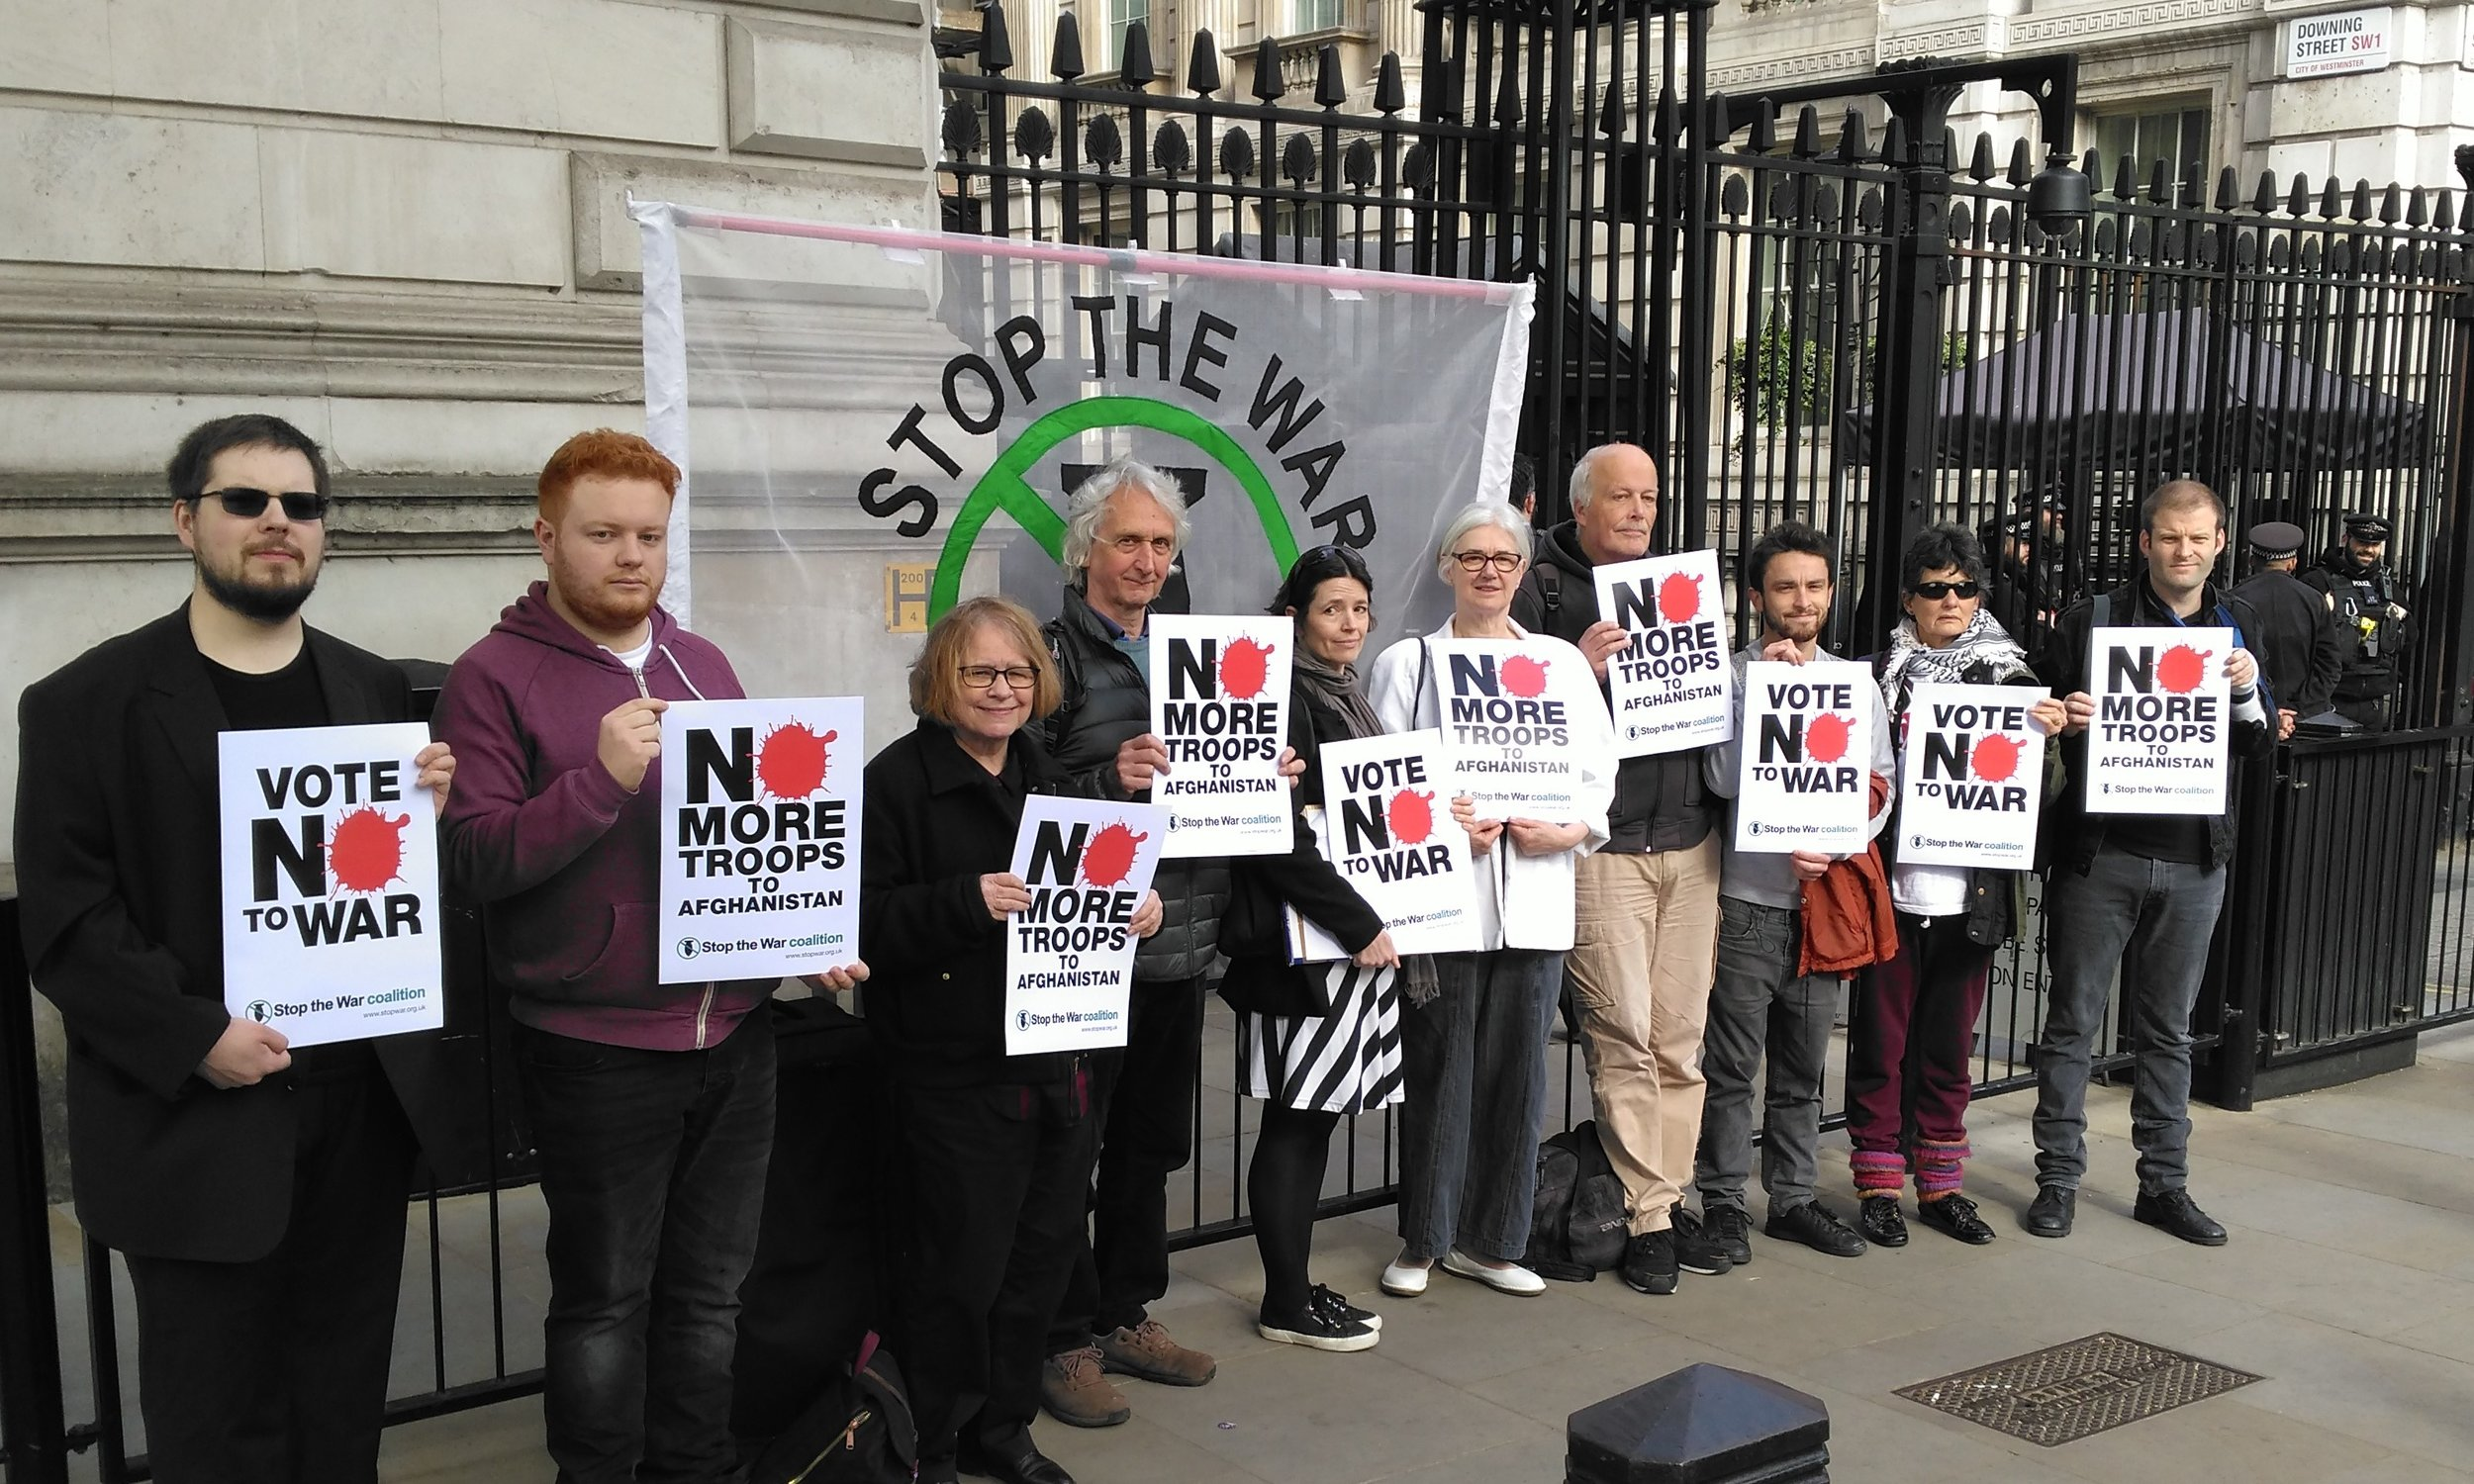 PeaceLine editor Jim Brann (4th right) and London CND chair Carol Turner (5th right) joined a Stop the War's protest at Downing Street earlier this year.